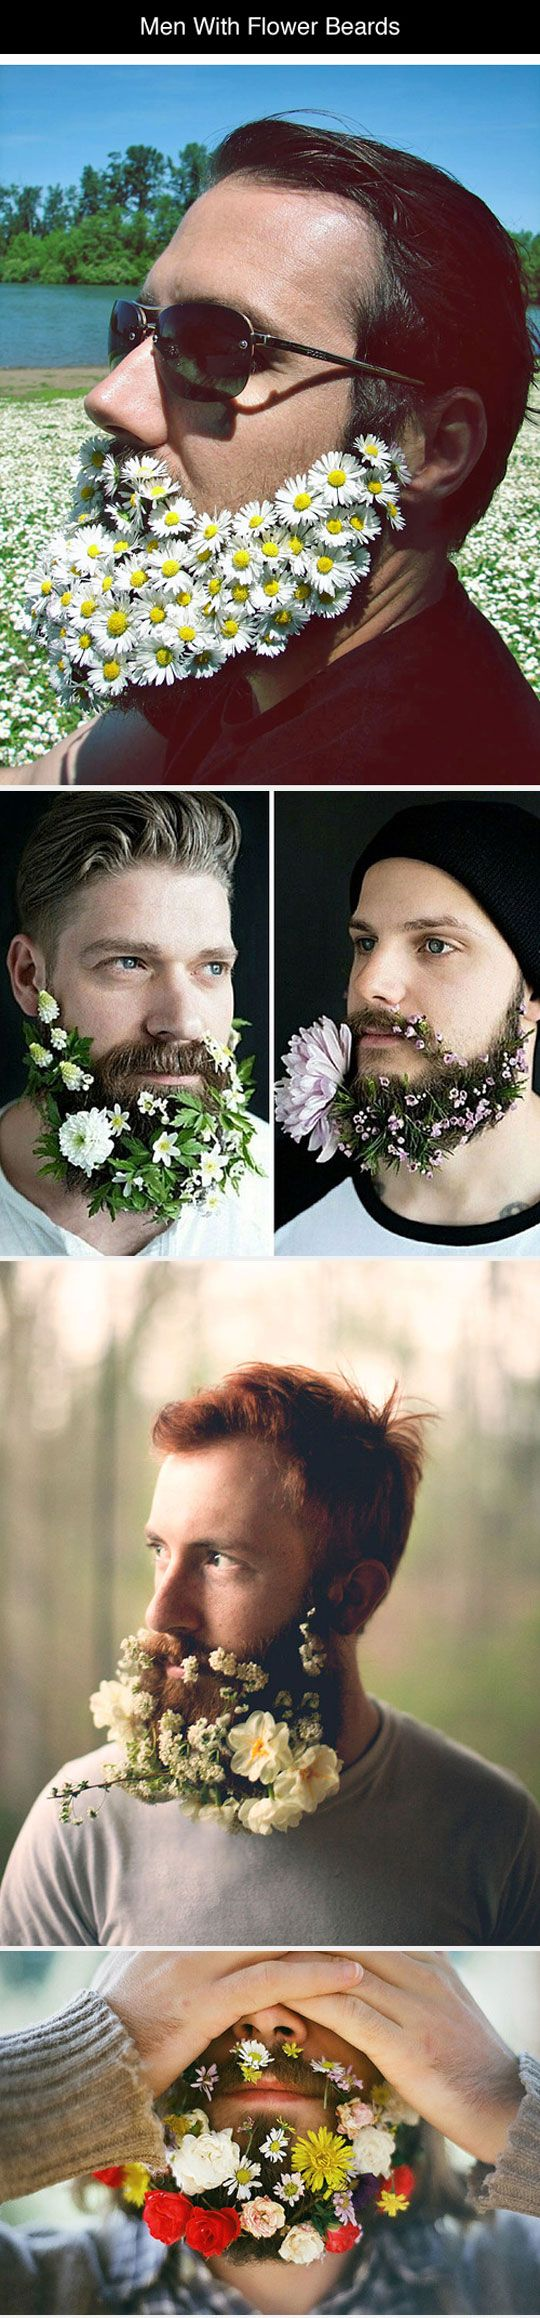 Men With Fabulous Flower Beards. What did I just look at.... lol